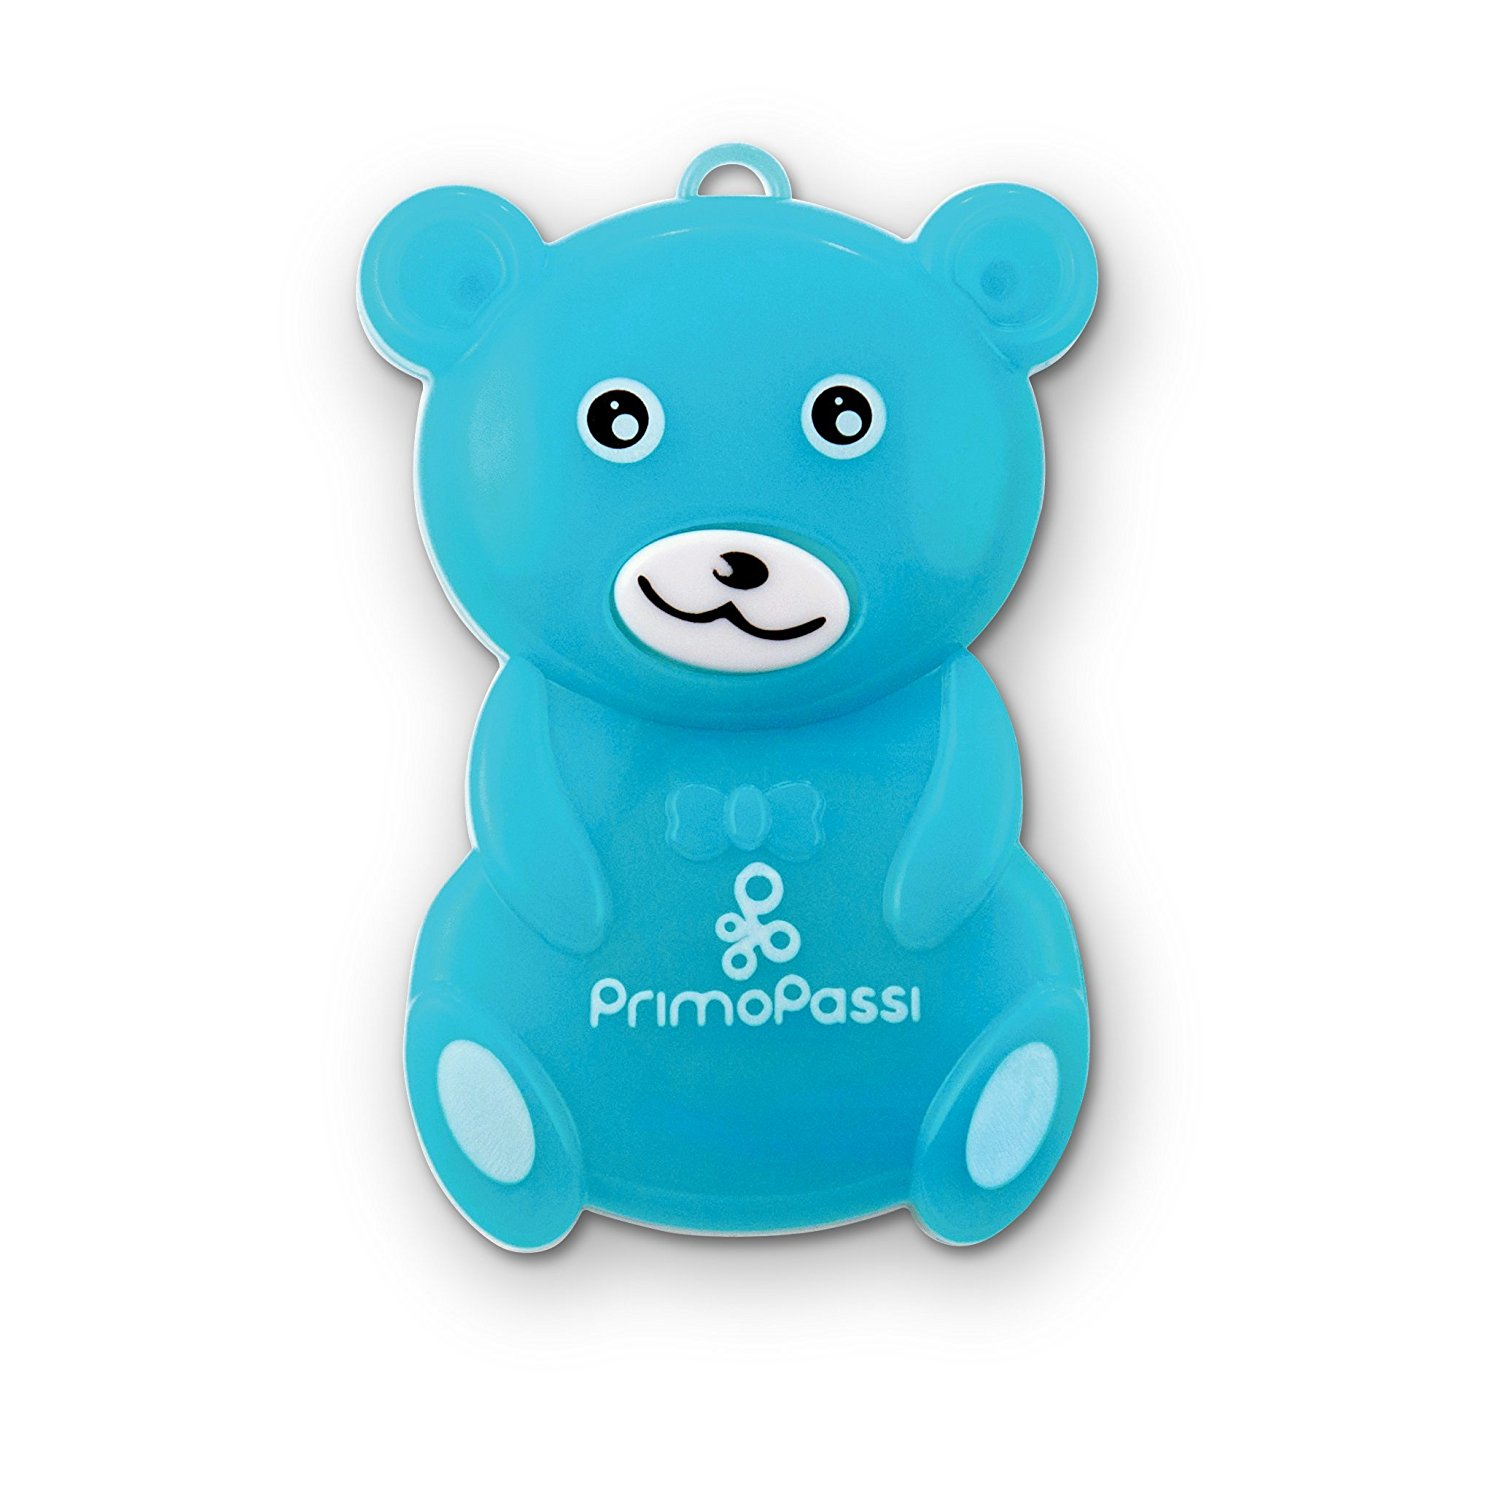 Primo Passi Baby Portable Ultrasonic Clip On Mosquito Repellent/Insect Repeller for Babies, Kids and Adults I Indoor & Outdoor I Non Toxic I Blue Bear